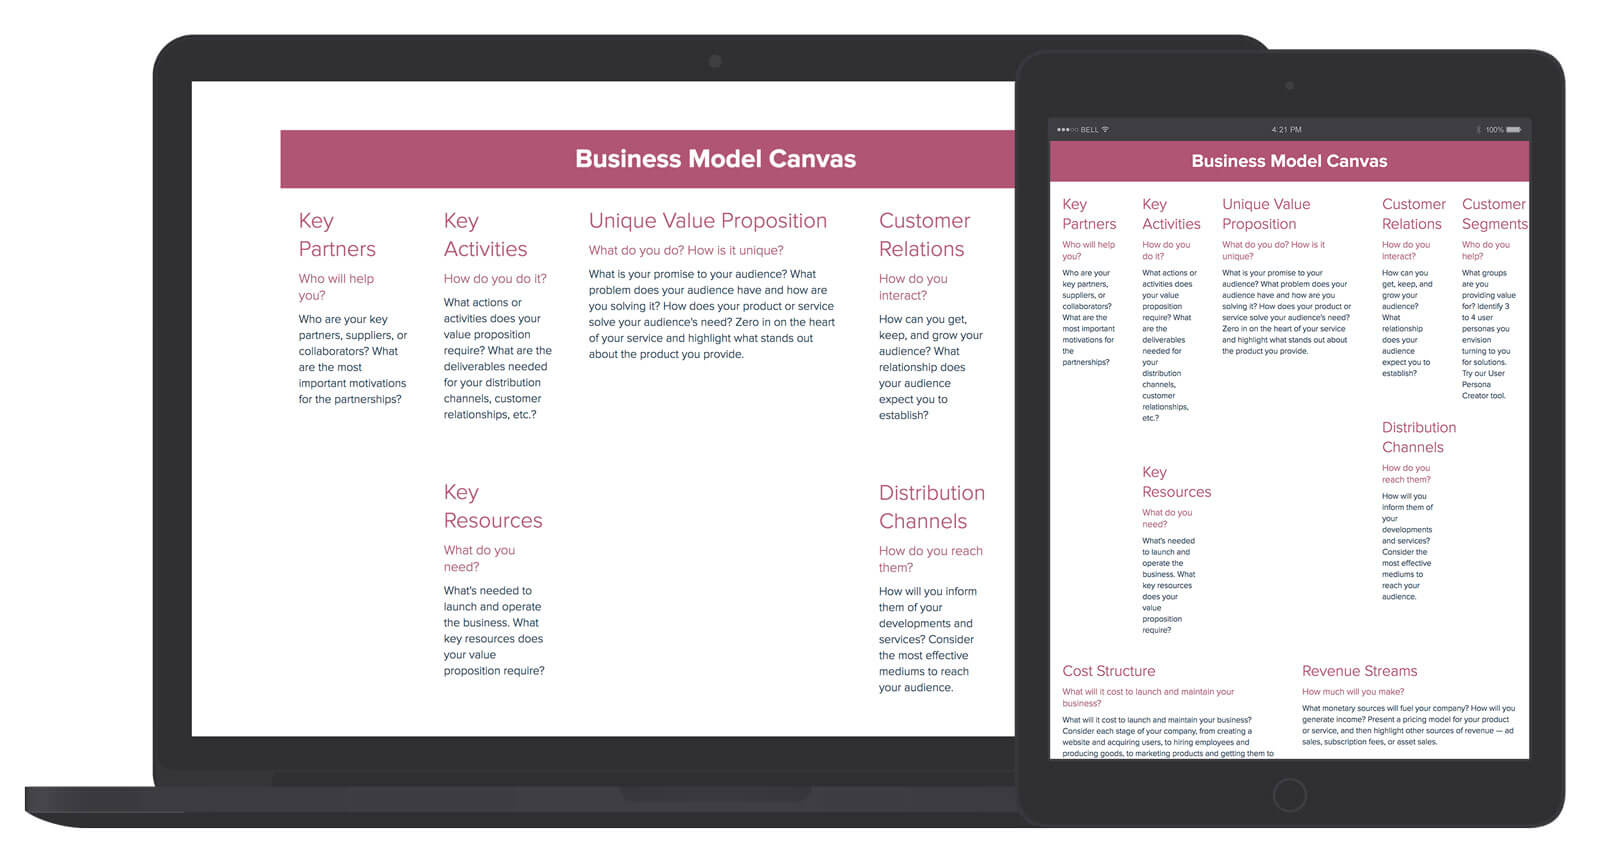 Business model canvas template and examples xtensio pin it on pinterest xtensio small business business model canvas wajeb Images